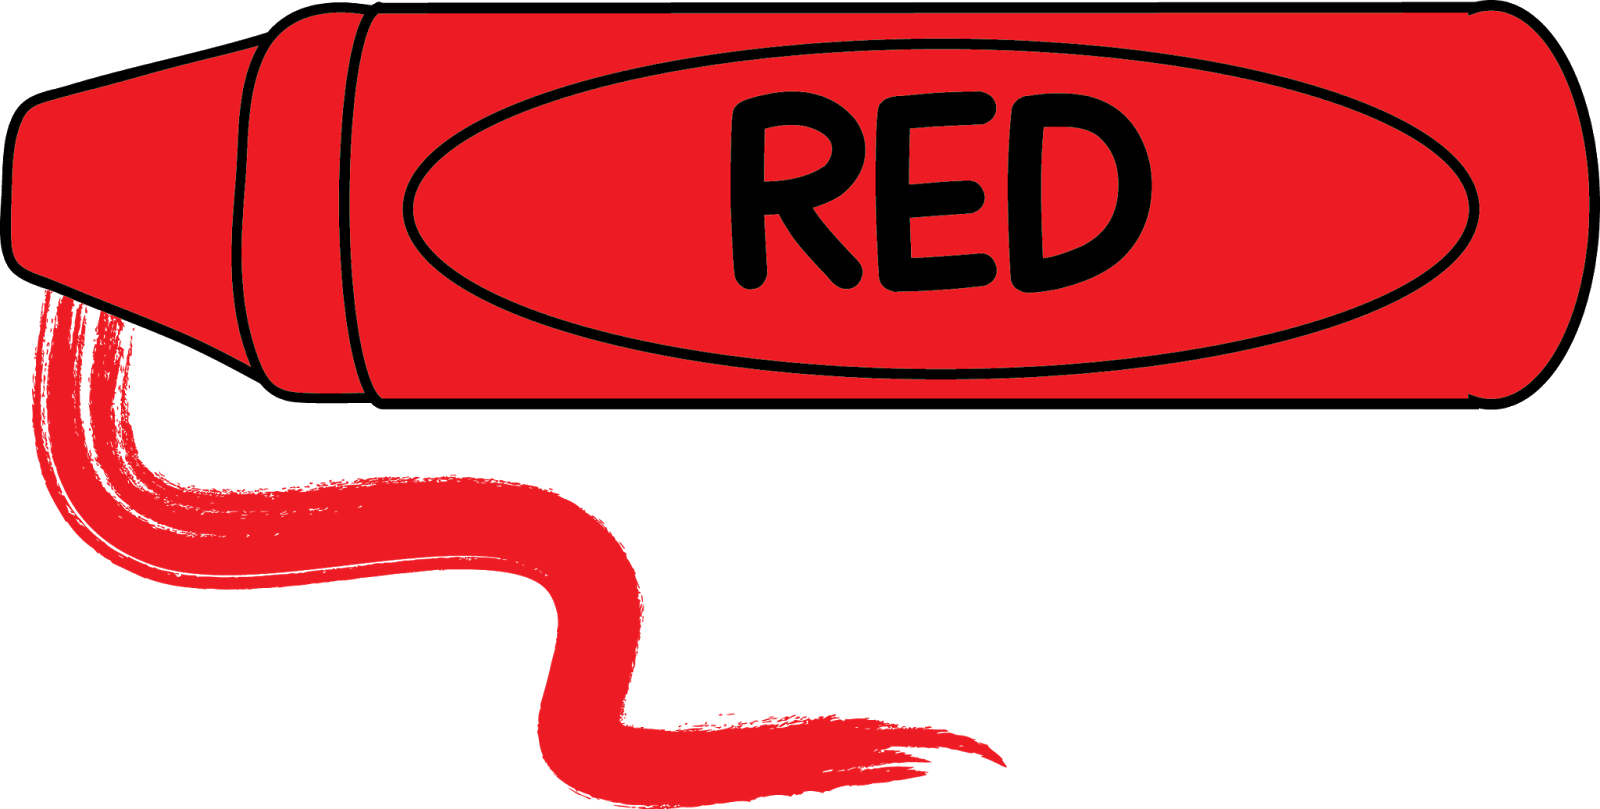 Red clipart #8, Download drawings